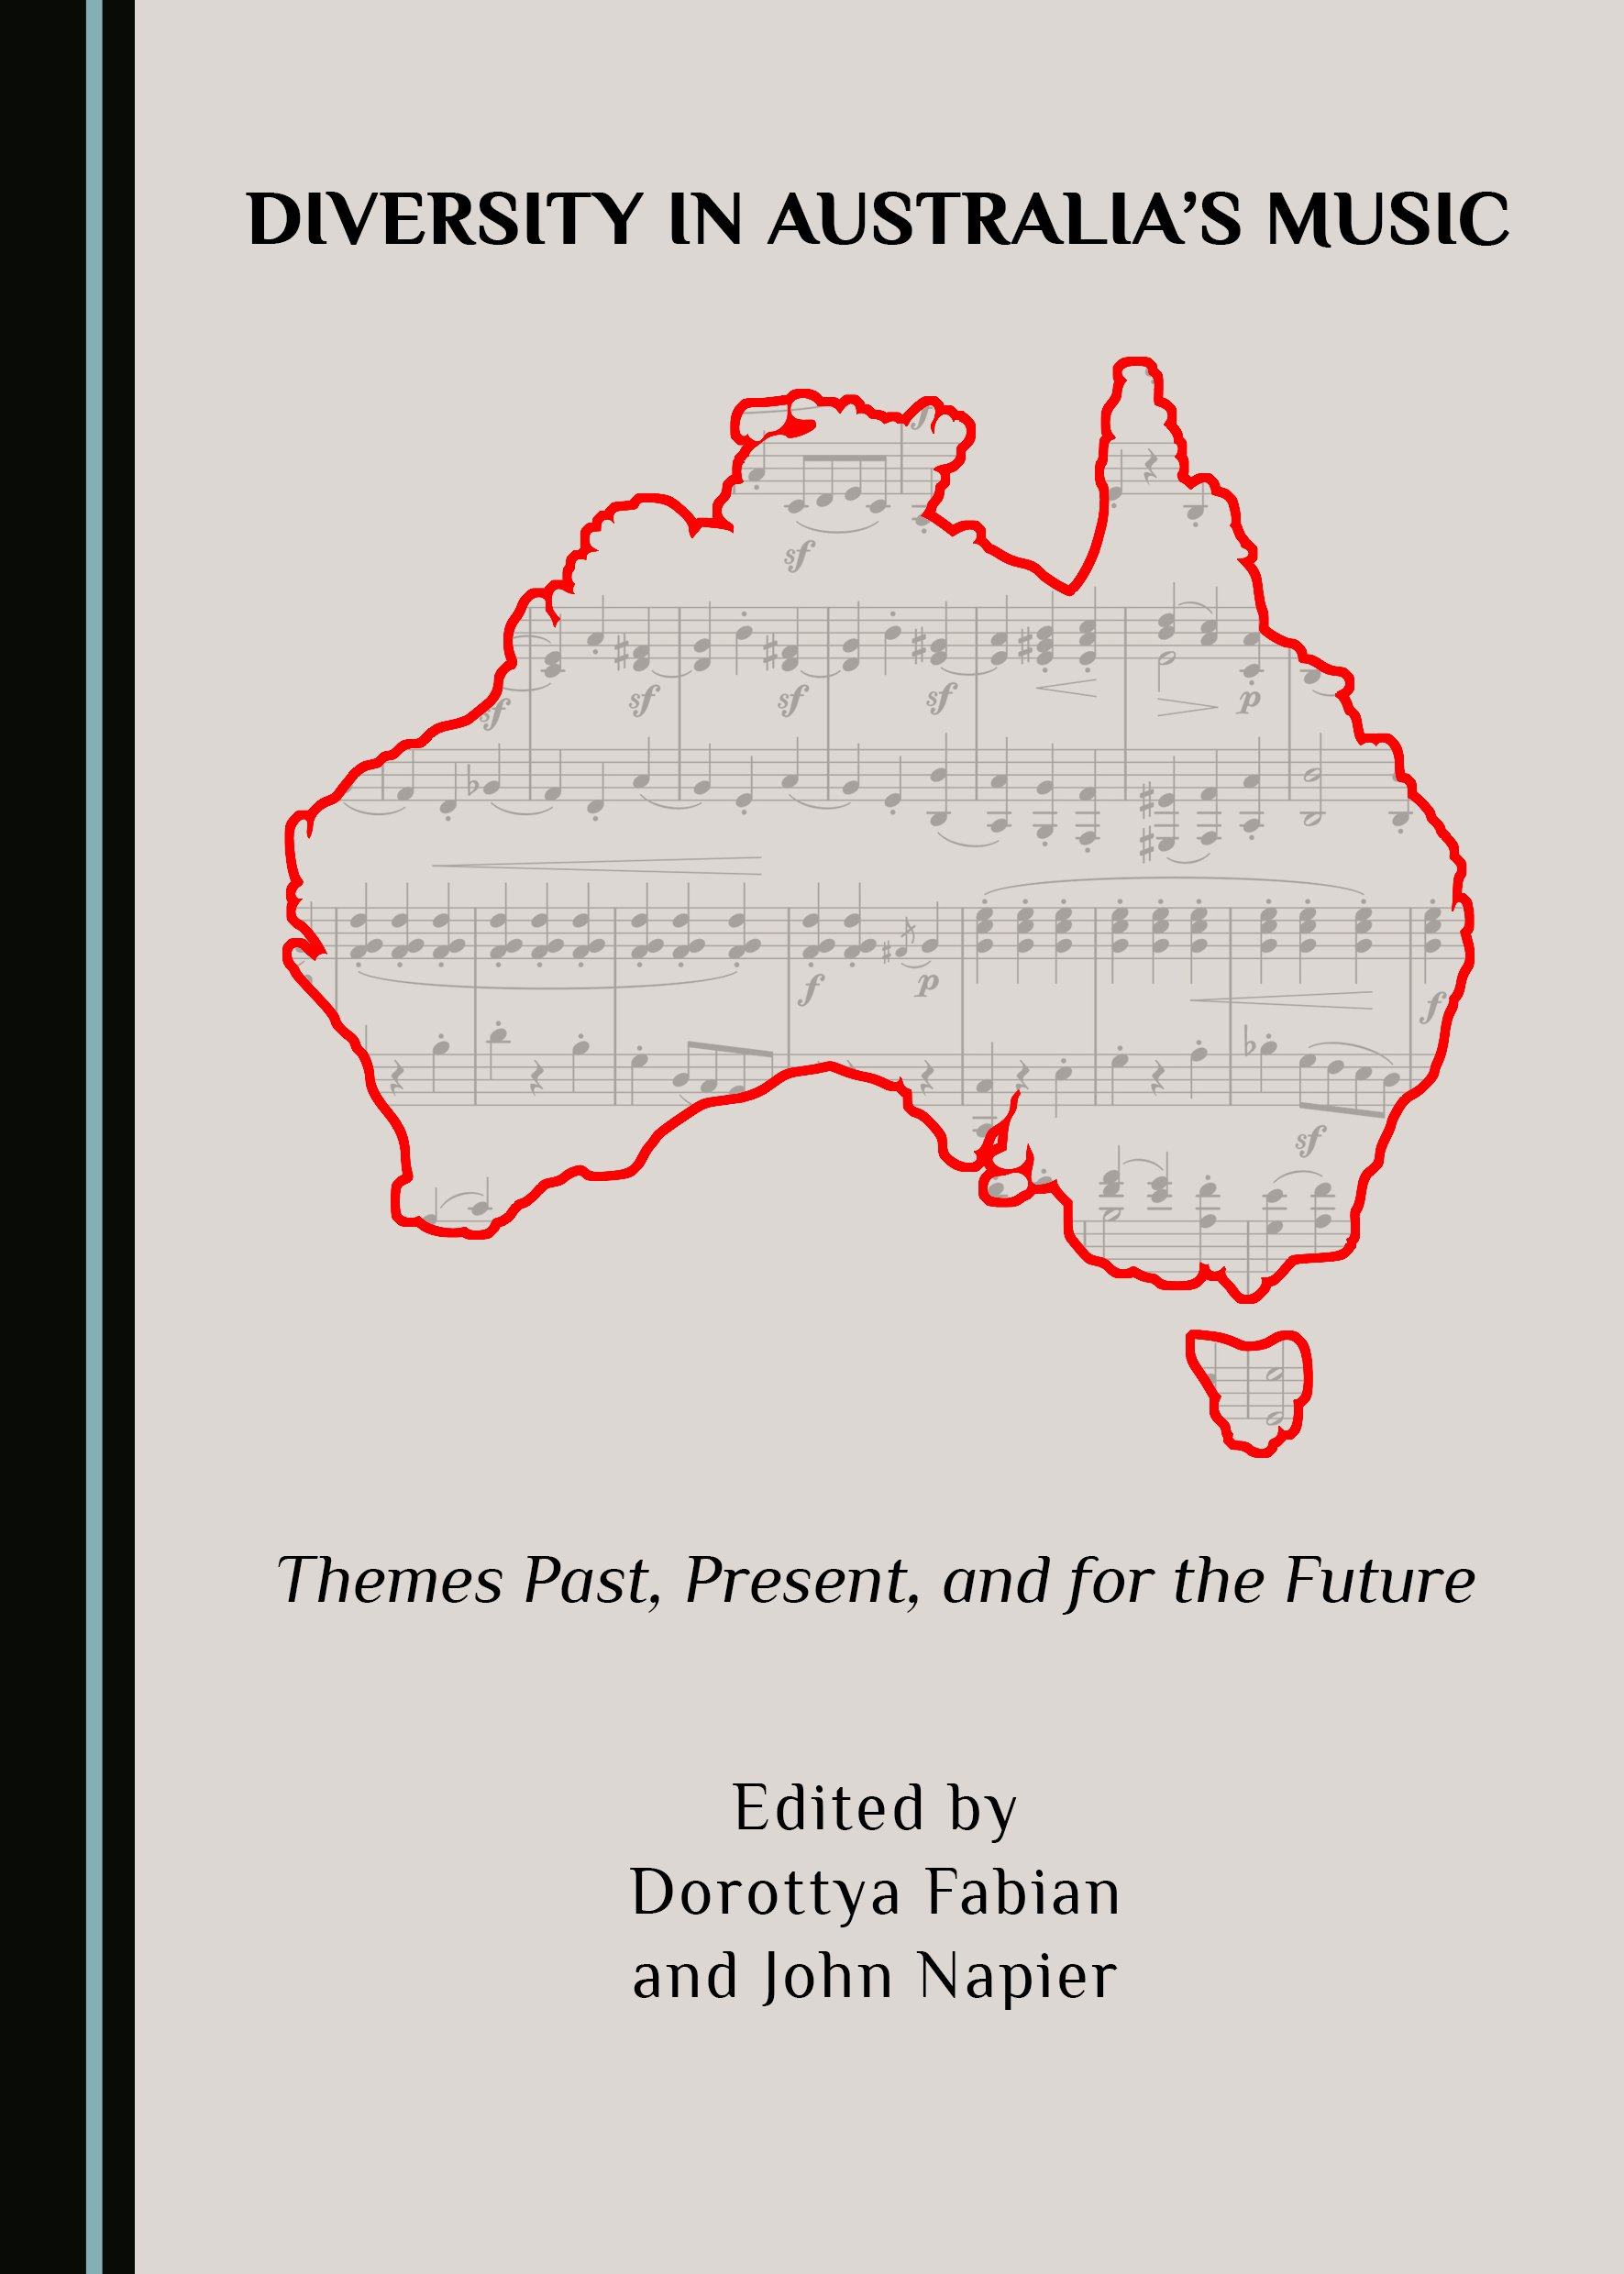 Diversity in Australia's Music: Themes Past, Present, and for the Future